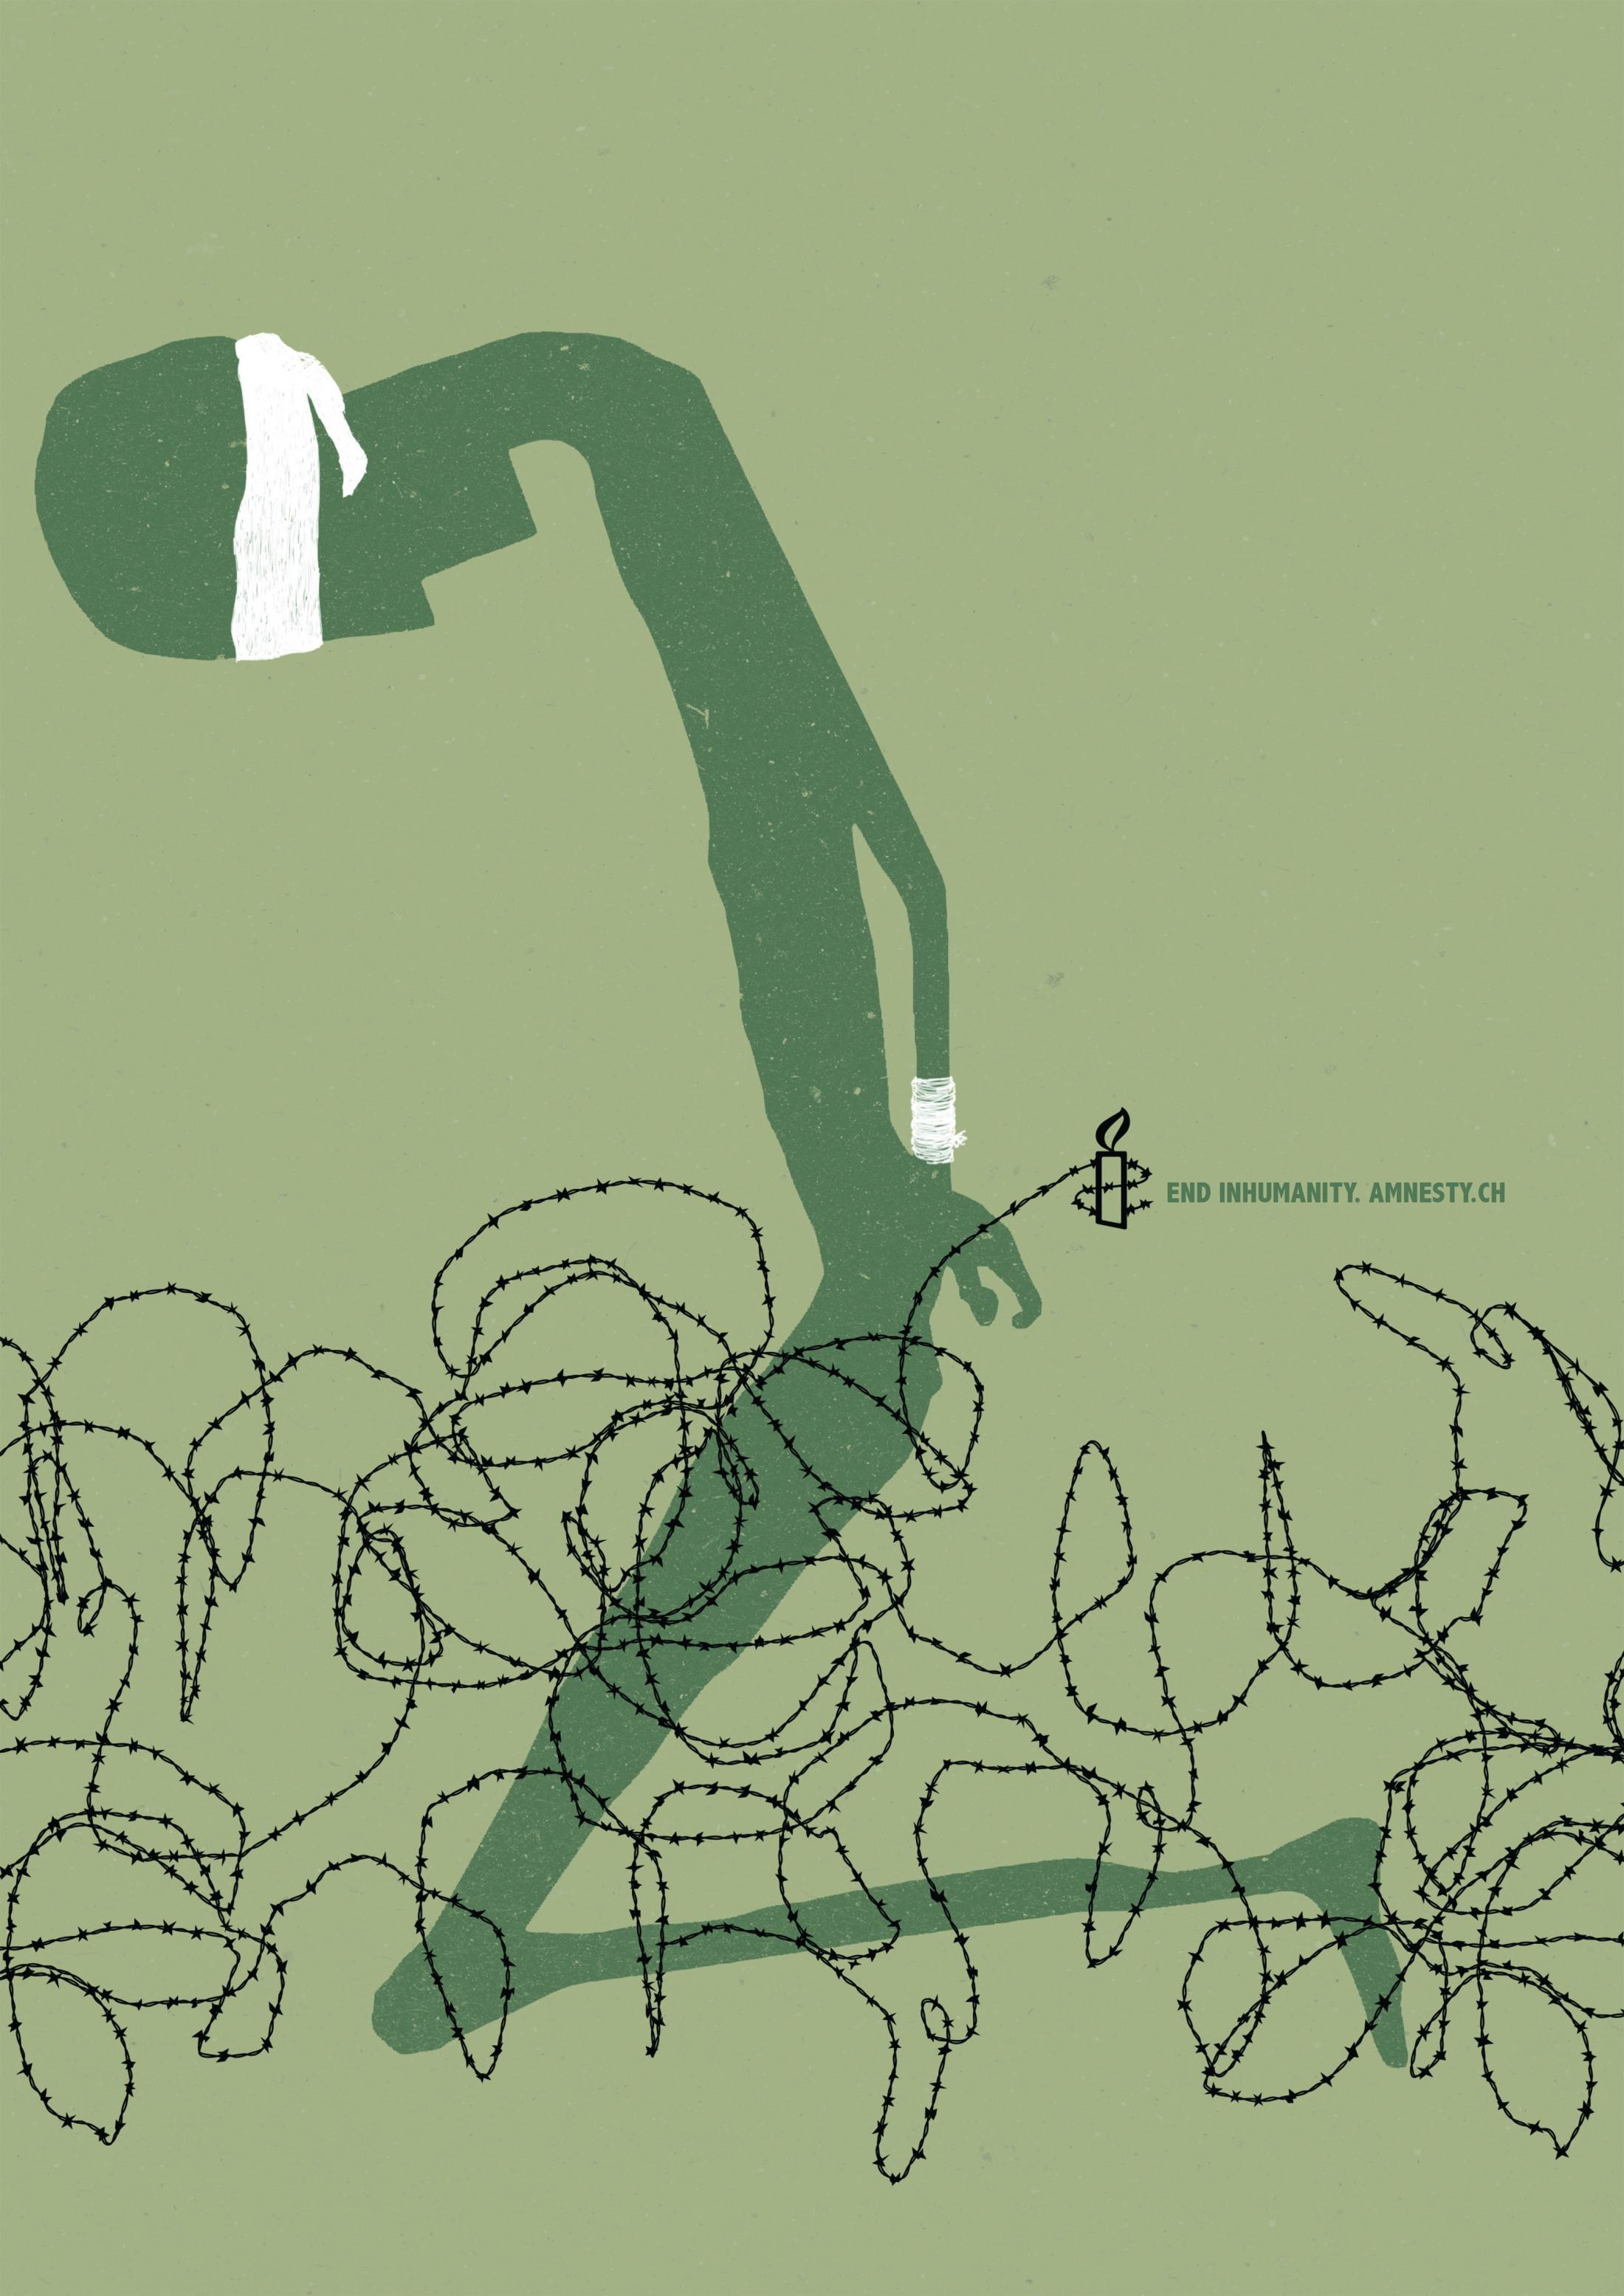 Thumbnail for The Barbwire Campaign